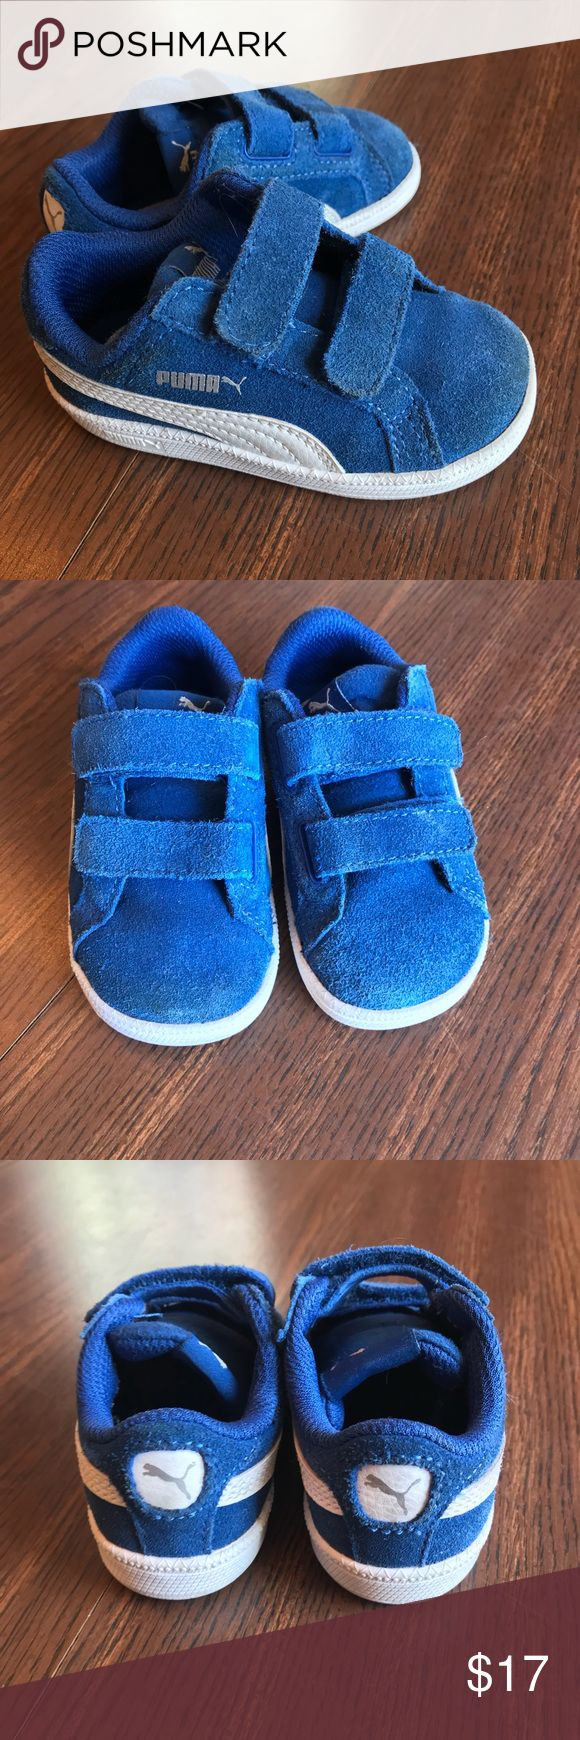 """Puma Smash toddler sneakers Puma Smash toddler sneakers size 5. EUC (see photos).   """"Cute and sporty, the Smash V2 low-top kicks from Puma will be the best pair of sneakers to add to his growing shoe collection.""""  I have been the only owner of this item. I am not a consigner. Smoke free home. Please check out my other listings to bundle (and receive an automatic 10% discount!!), and save on shipping. Thank you for looking!! Puma Shoes Sneakers"""